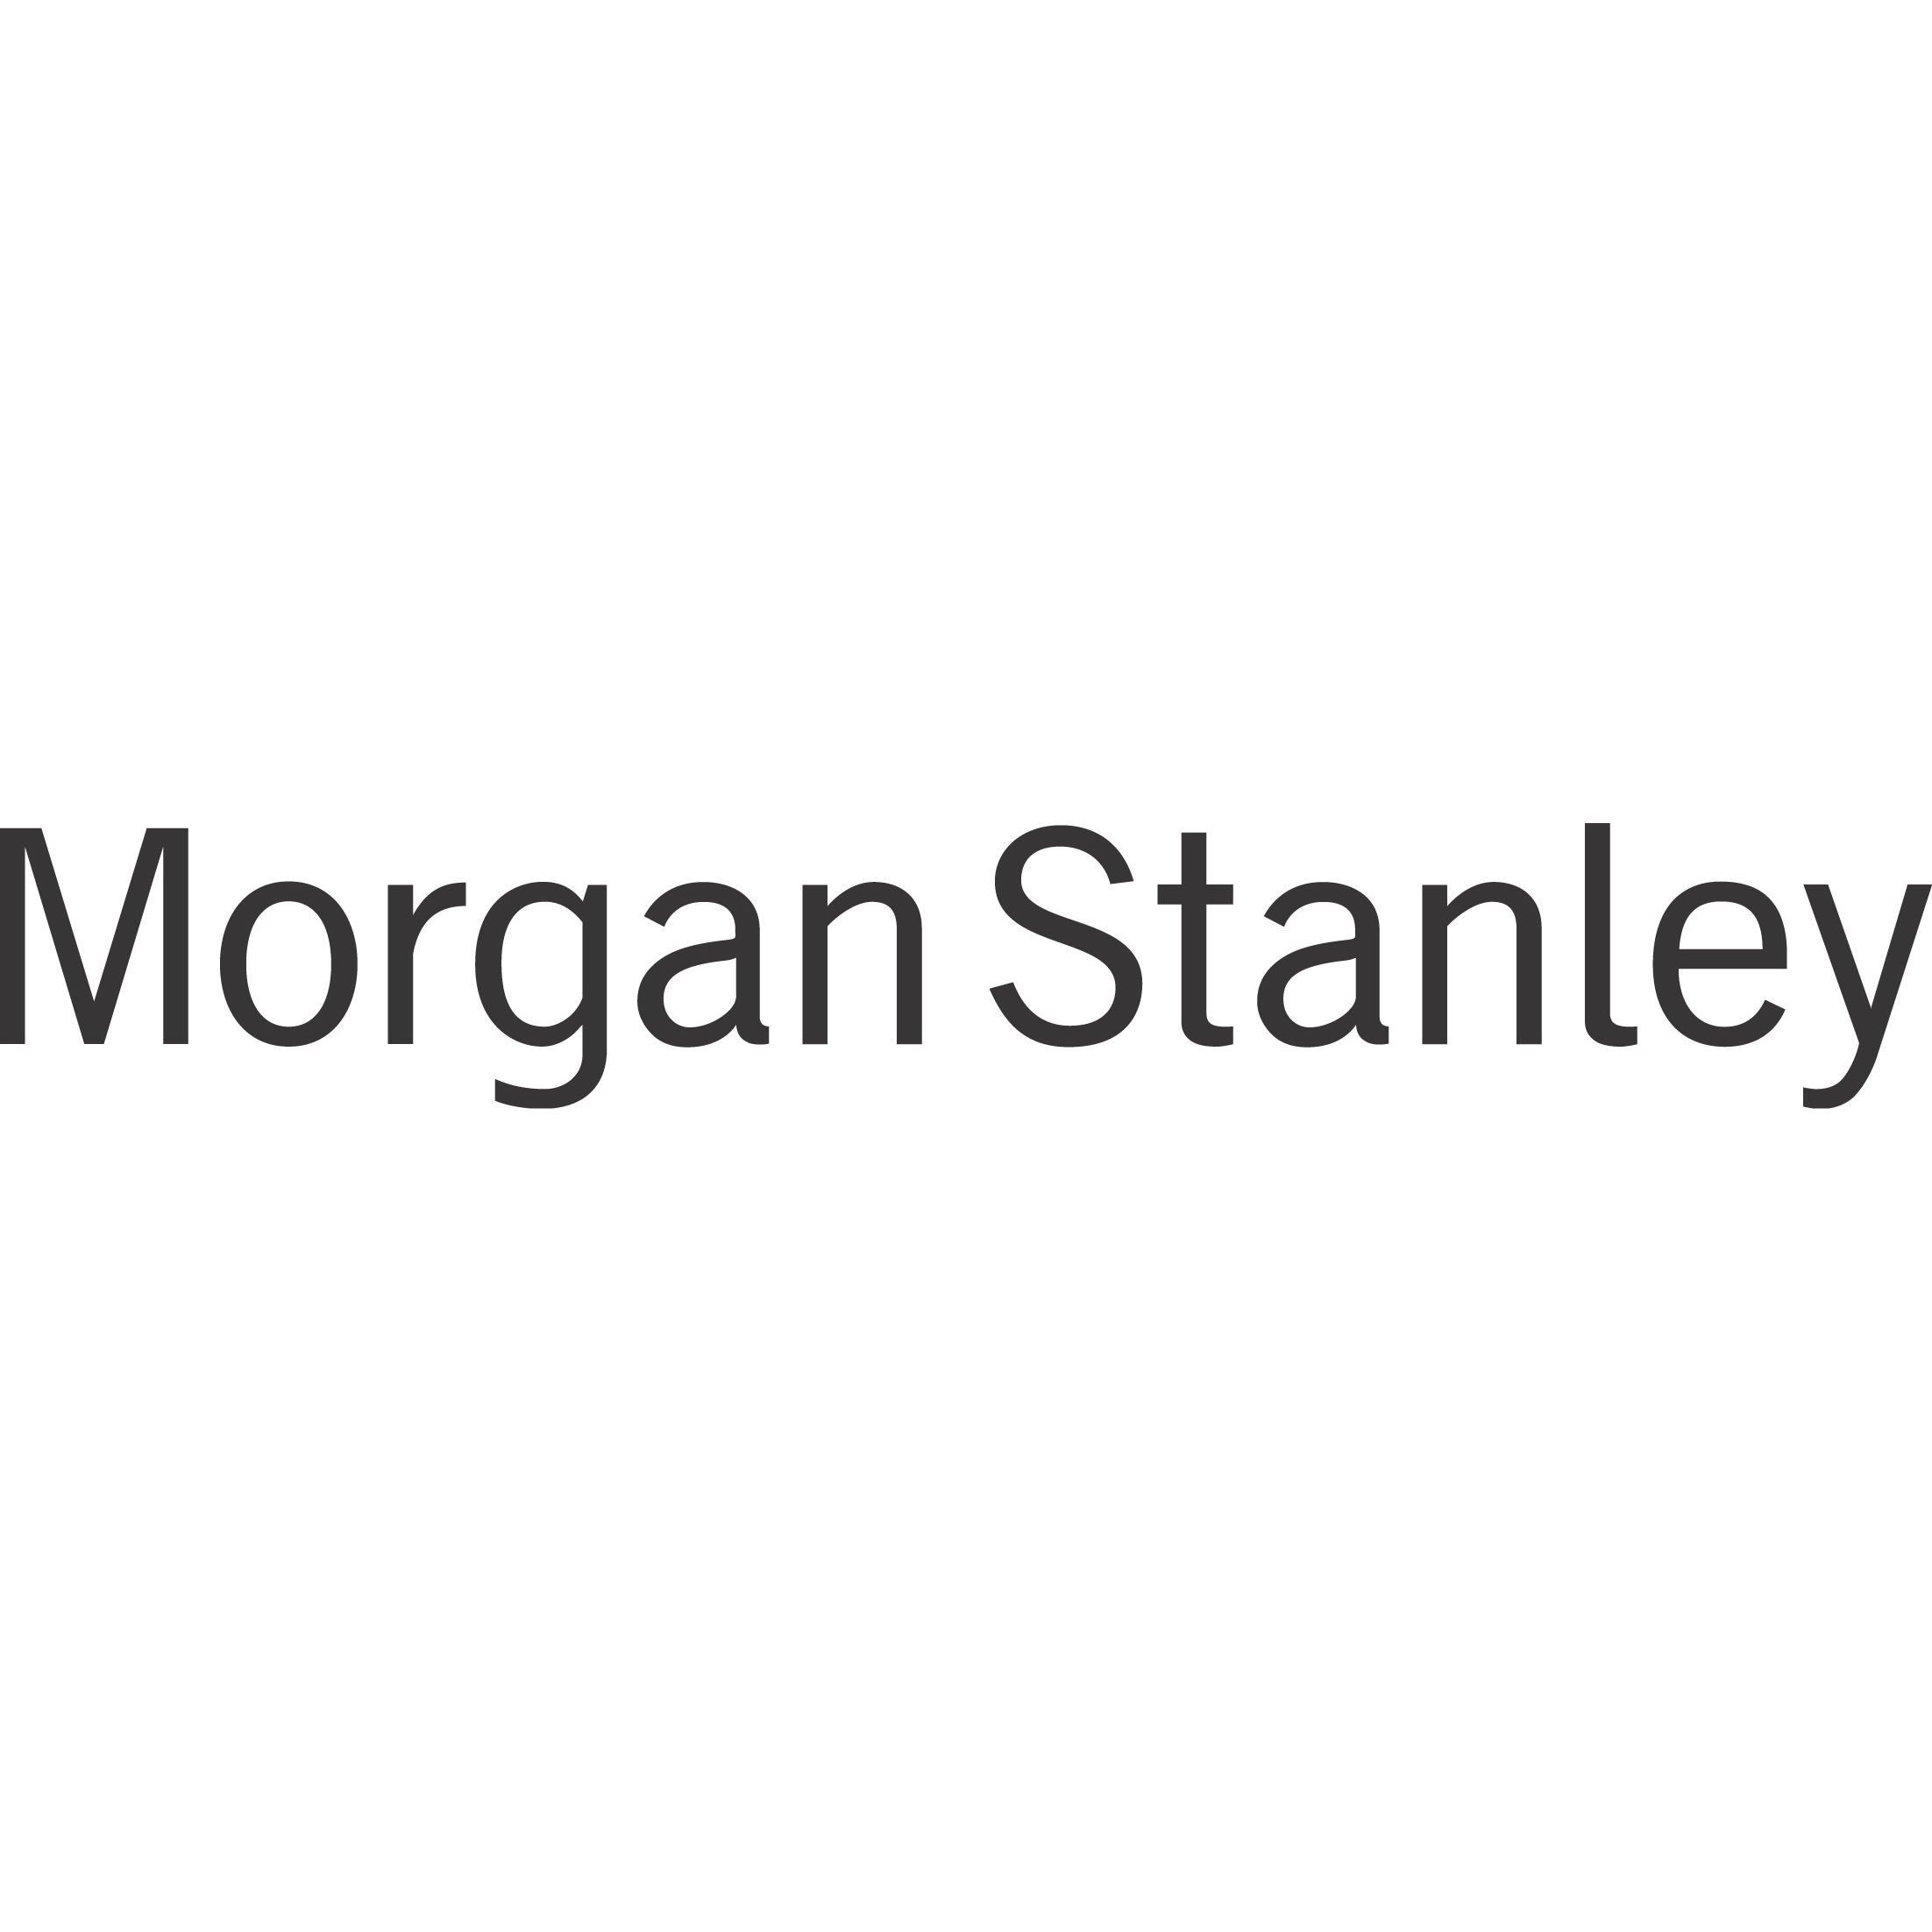 Tia L. Regan - Morgan Stanley